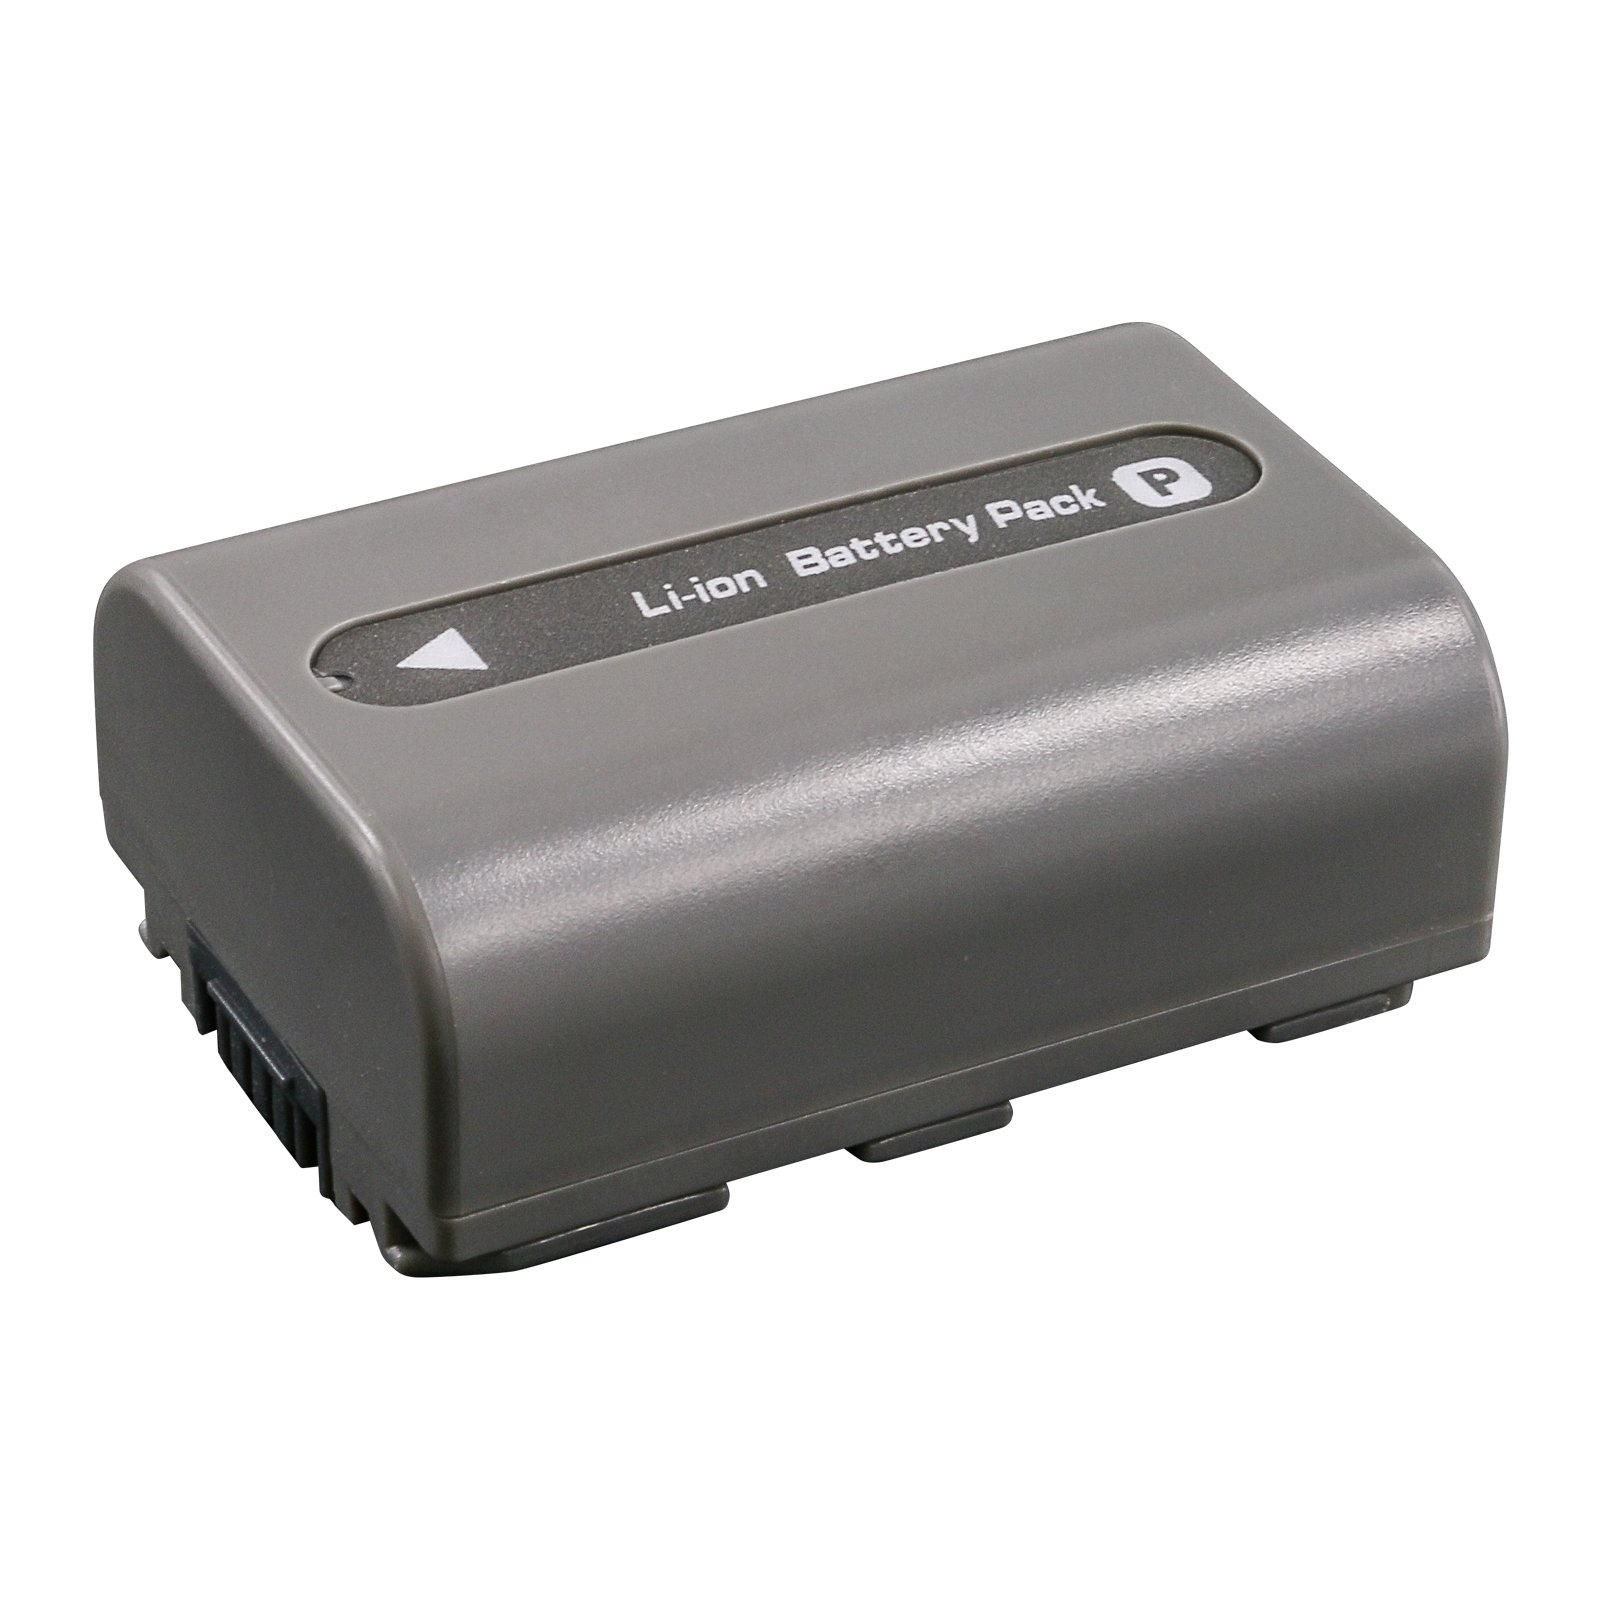 Rechargeable Lithium-Ion Battery Pack for Sony NP-FP30, NP-FP50, NP-FP60, NP-FP70, NP-FP90 InfoLITHIUM P Series and Sony DCR-HC20, DCR-HC21, DCR-HC26, DCR-HC28, DCR-HC30, DCR-HC32, DCR-HC36, DCR-HC40, DCR-HC42, DCR-HC46, DCR-HC65, DCR-HC85, DCR-HC96, DCR-